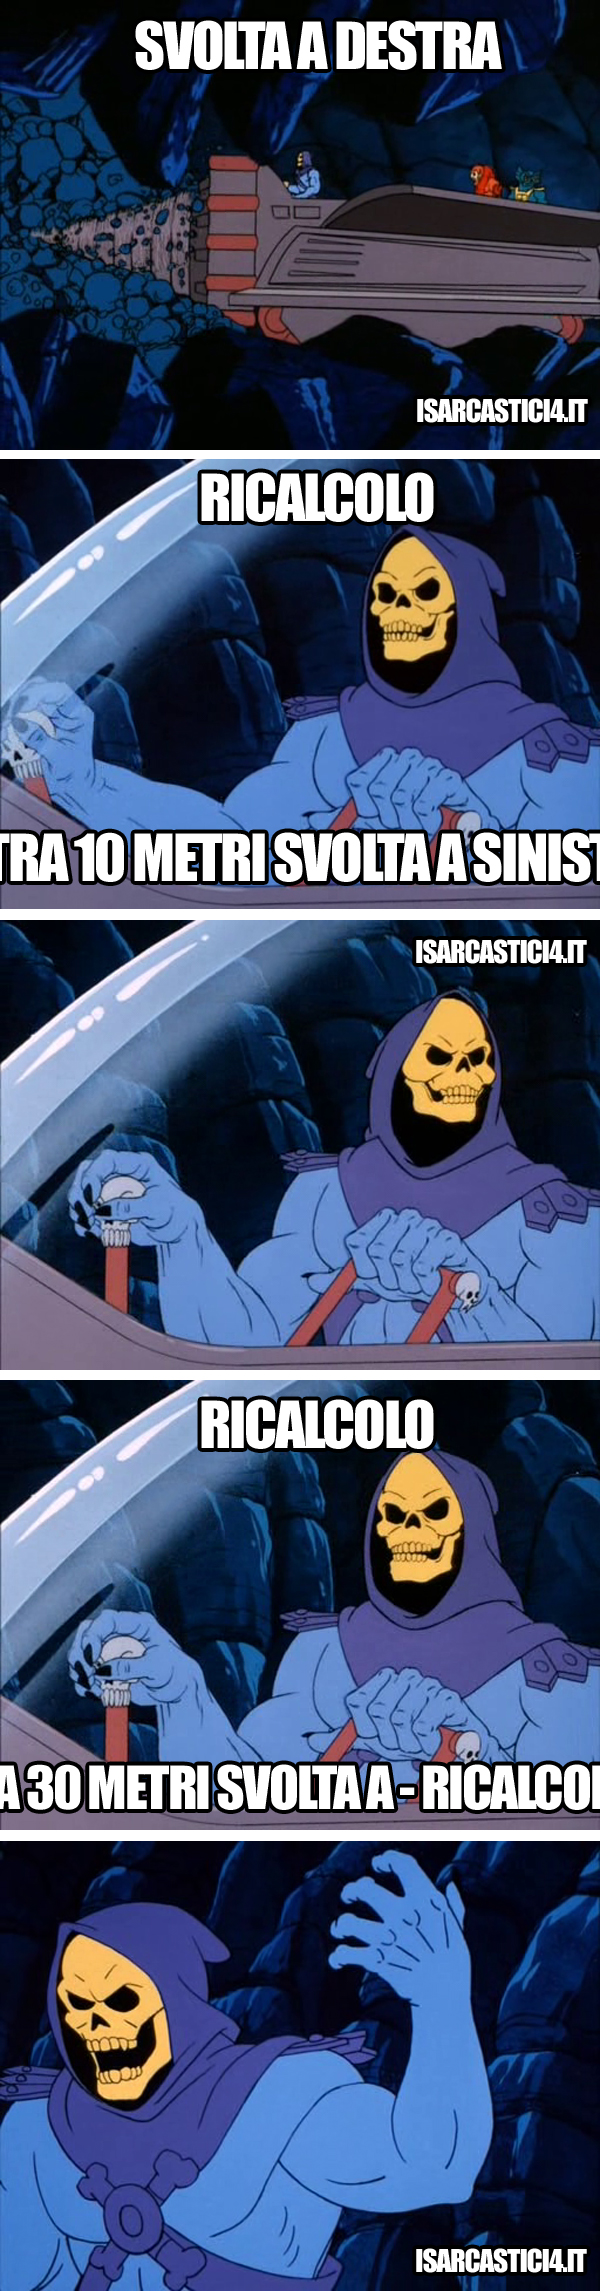 MOTU, Masters Of The Universe meme ita - Skeletor e il Tom Tom